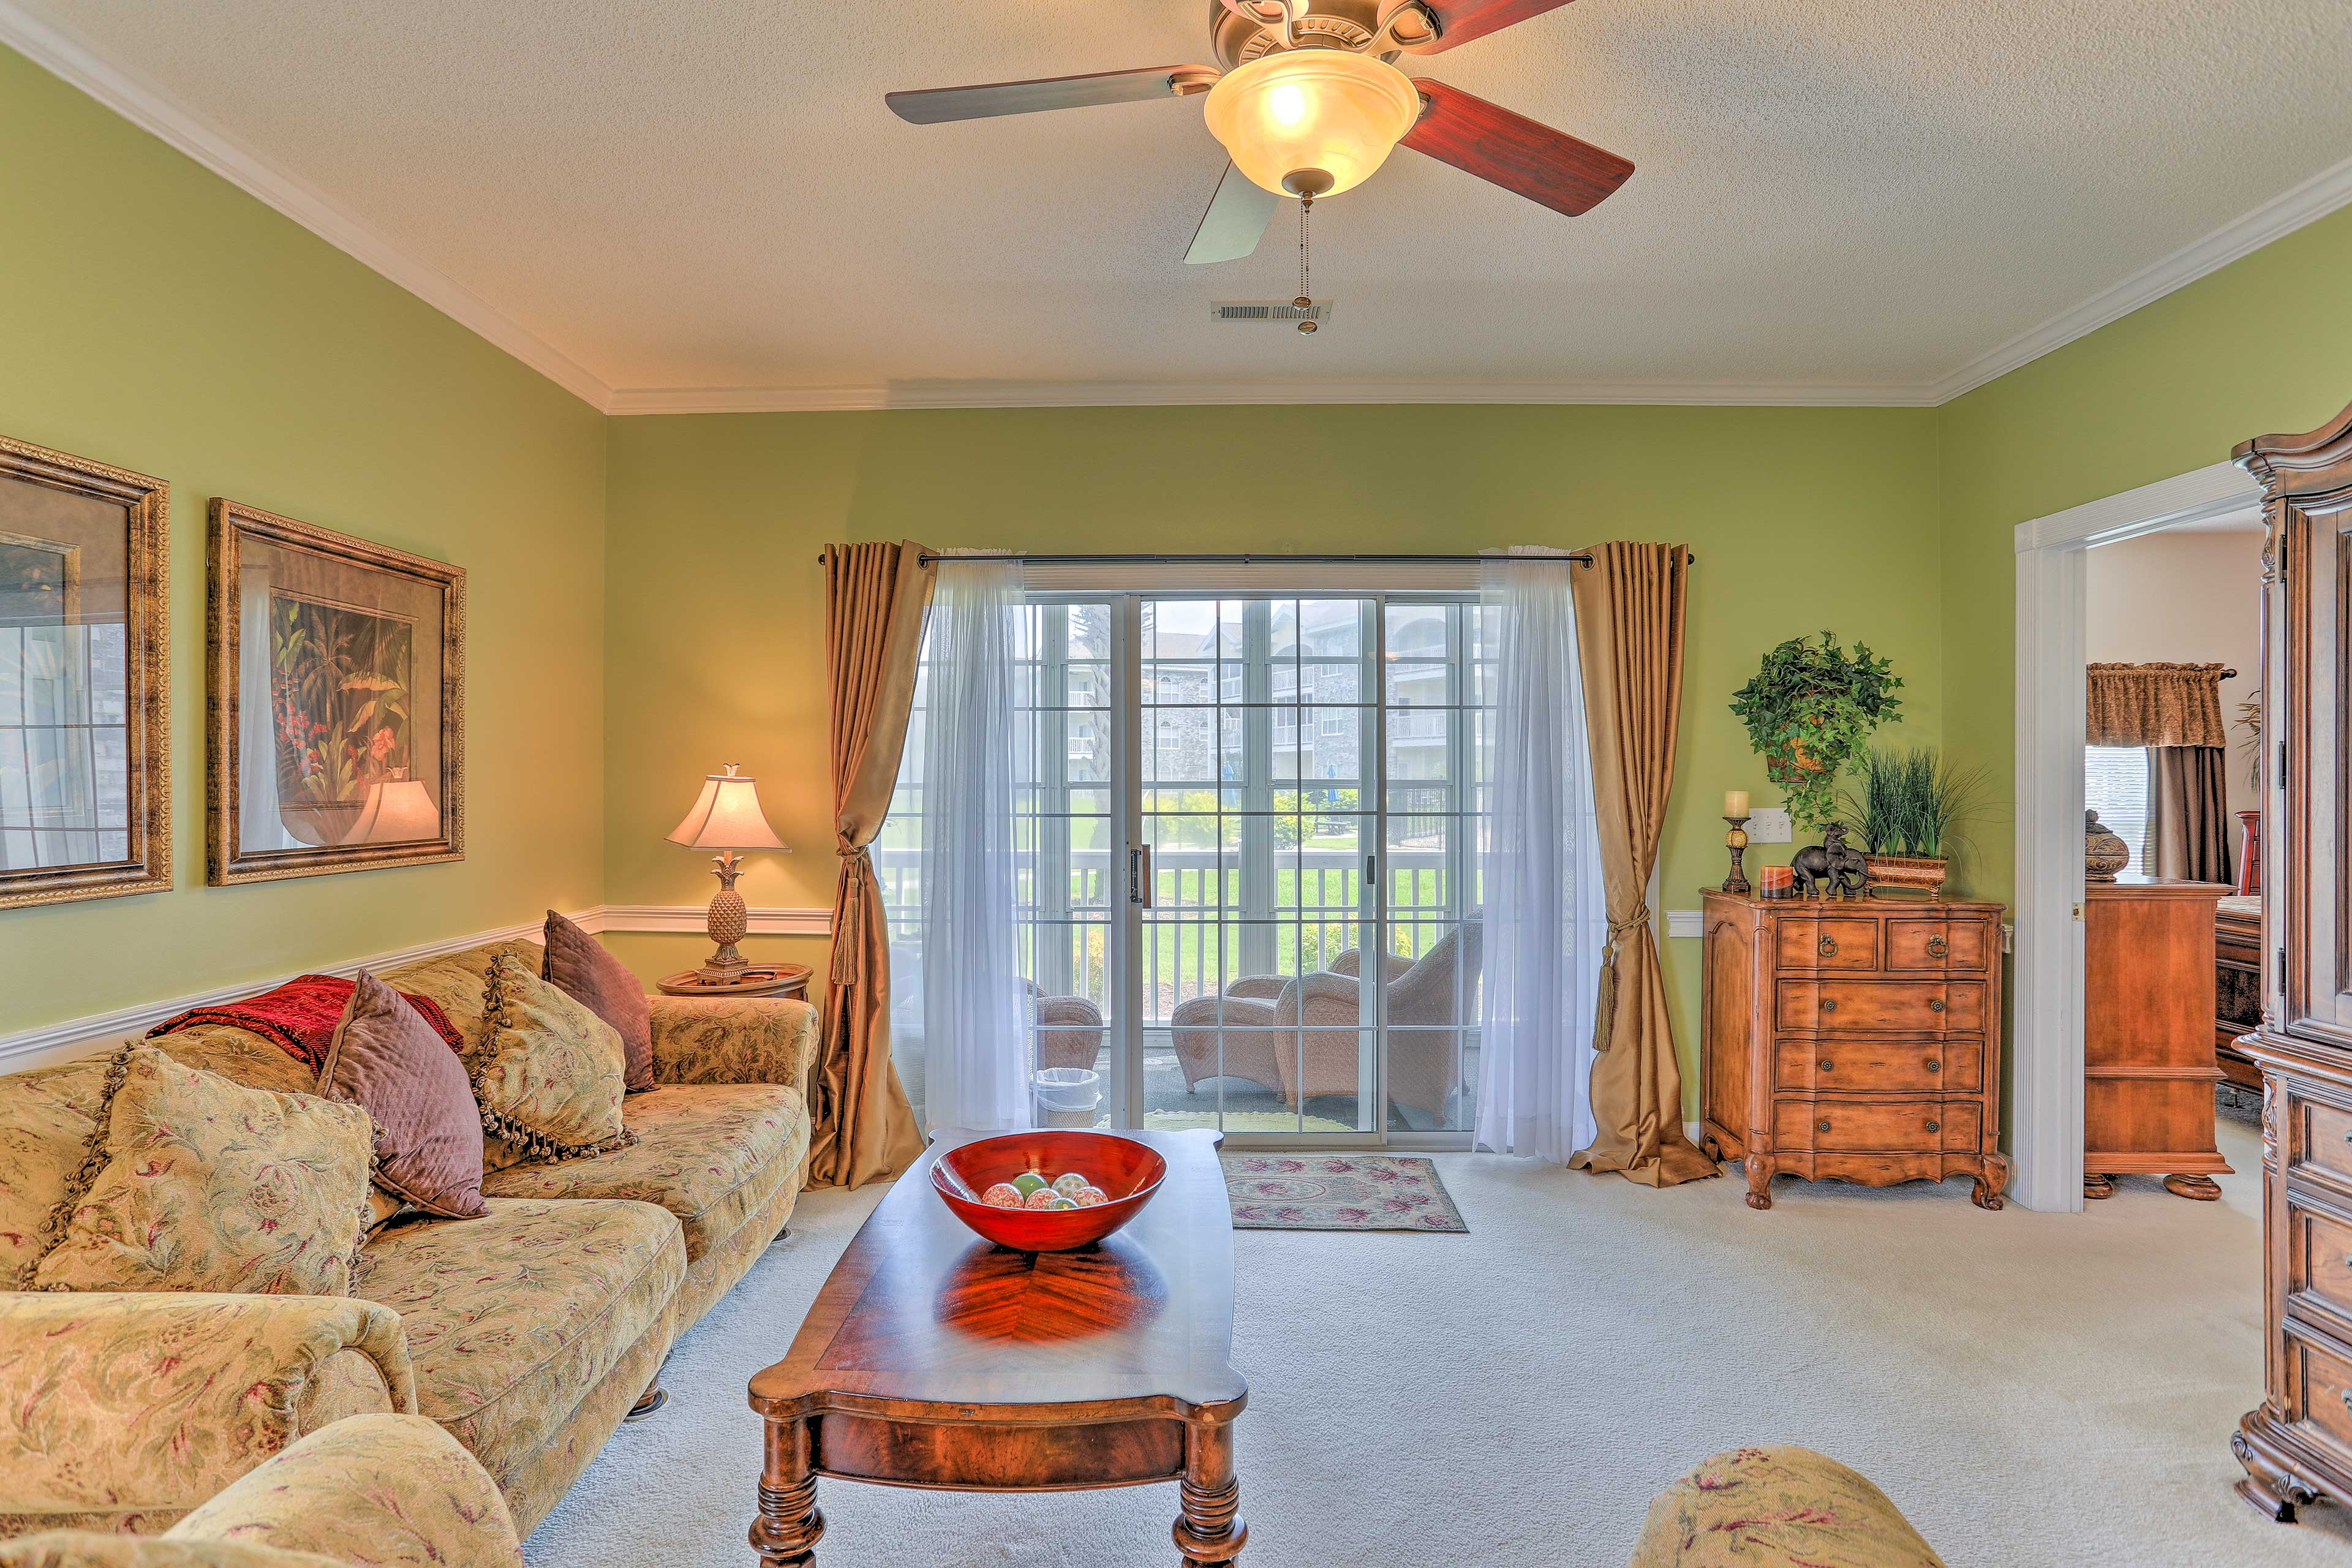 Make this Magnolia Place condo your home-away-from-home in Myrtle Beach.